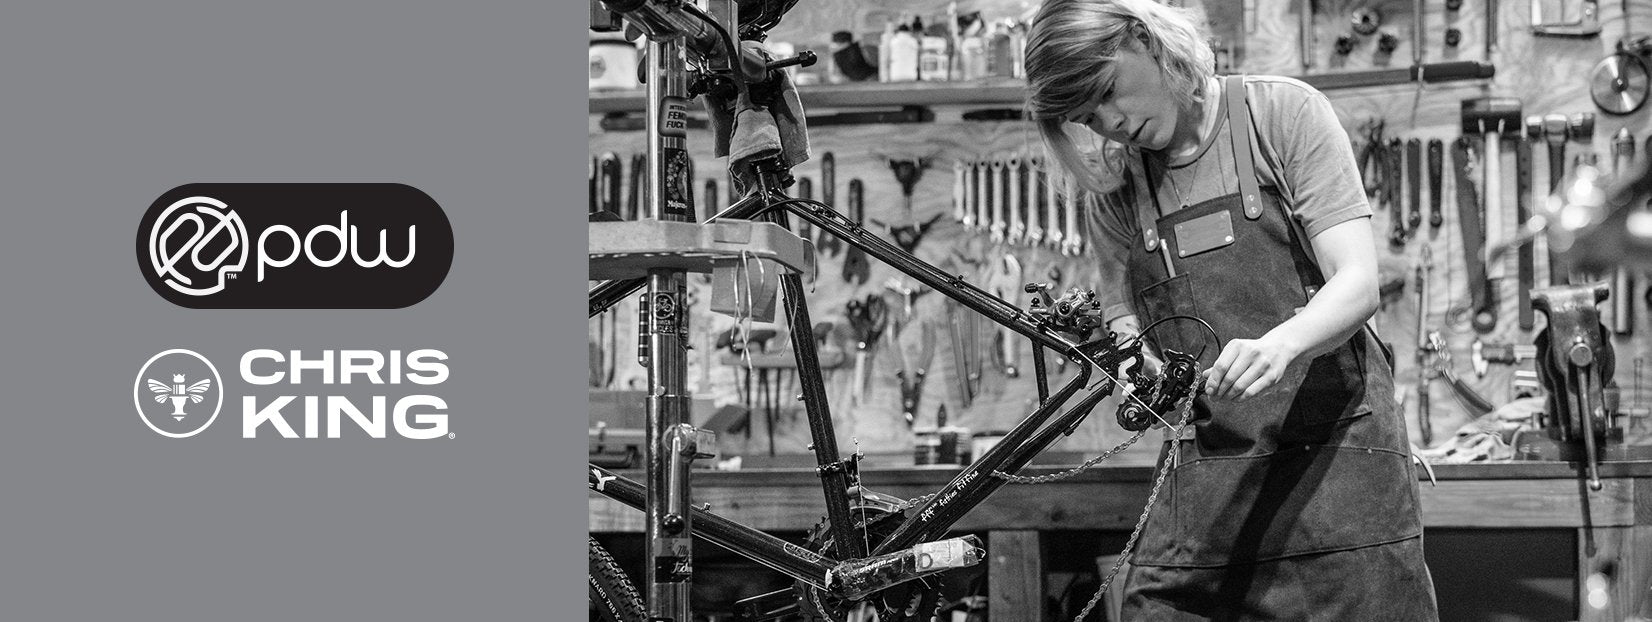 Bike mechanic working on a rear derailleur, and the PDW and Chris King logos.